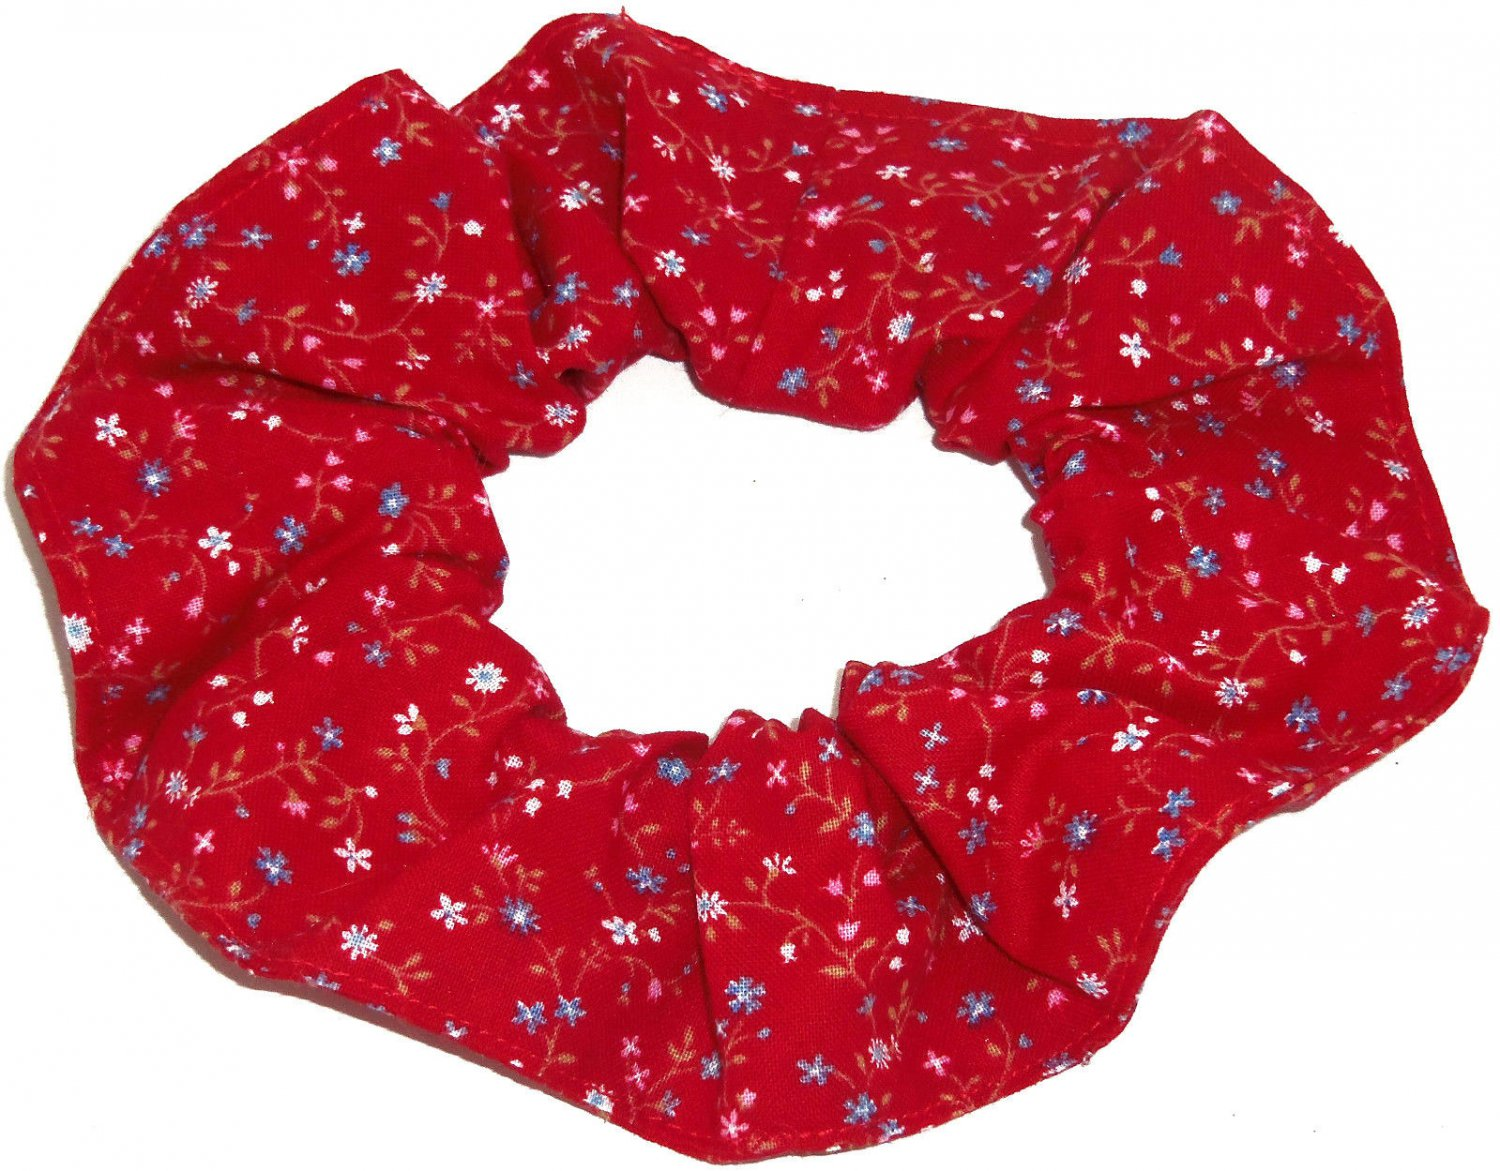 Tiny Floral Flowers Red Fabric Hair Scrunchie Scrunchies by Sherry